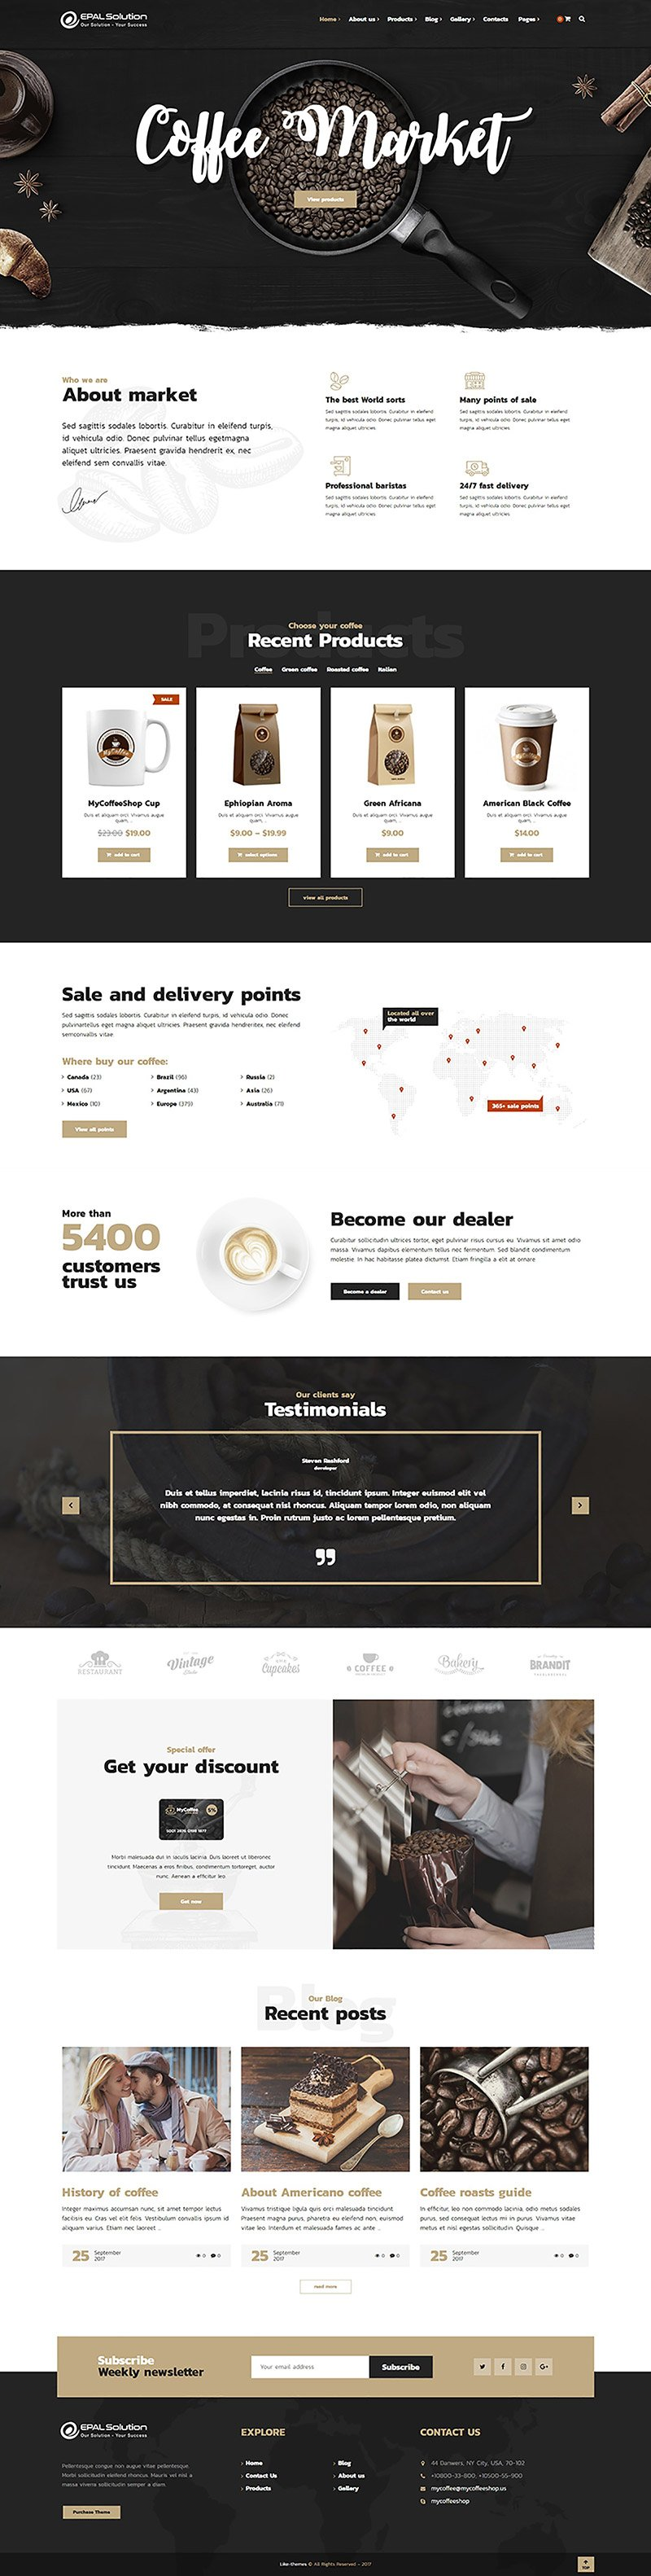 Giao-dien-website-coffee-Market